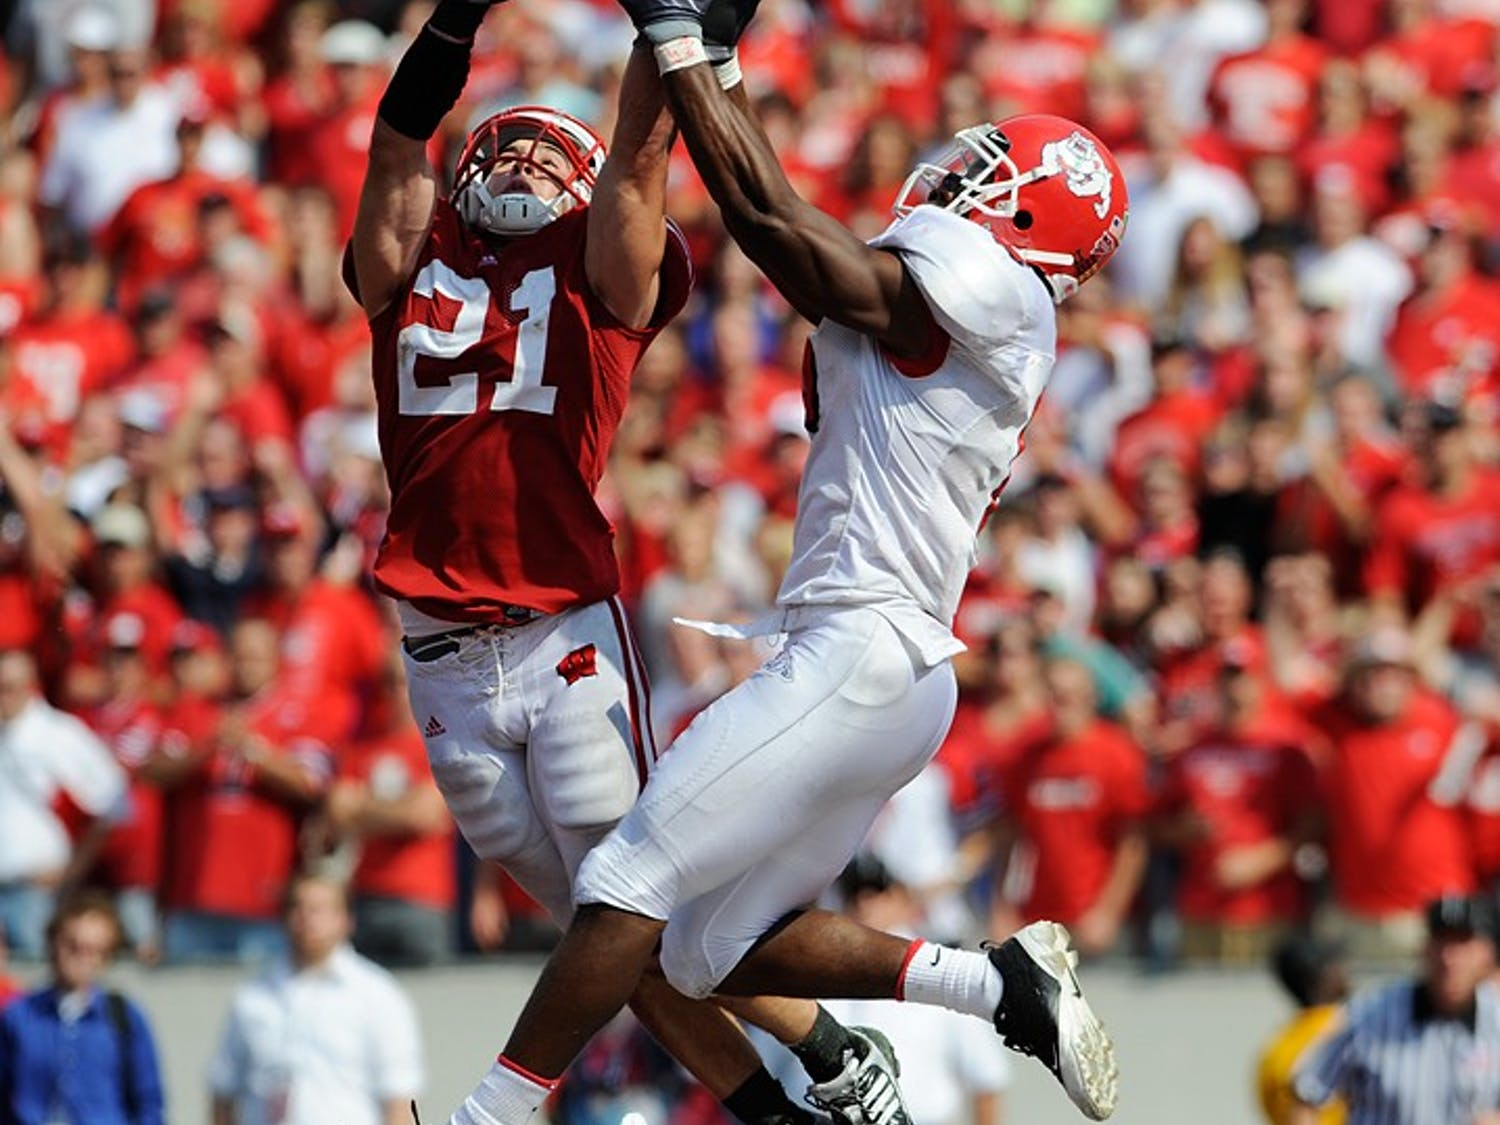 After overtime thriller, Badgers improve to 2-0